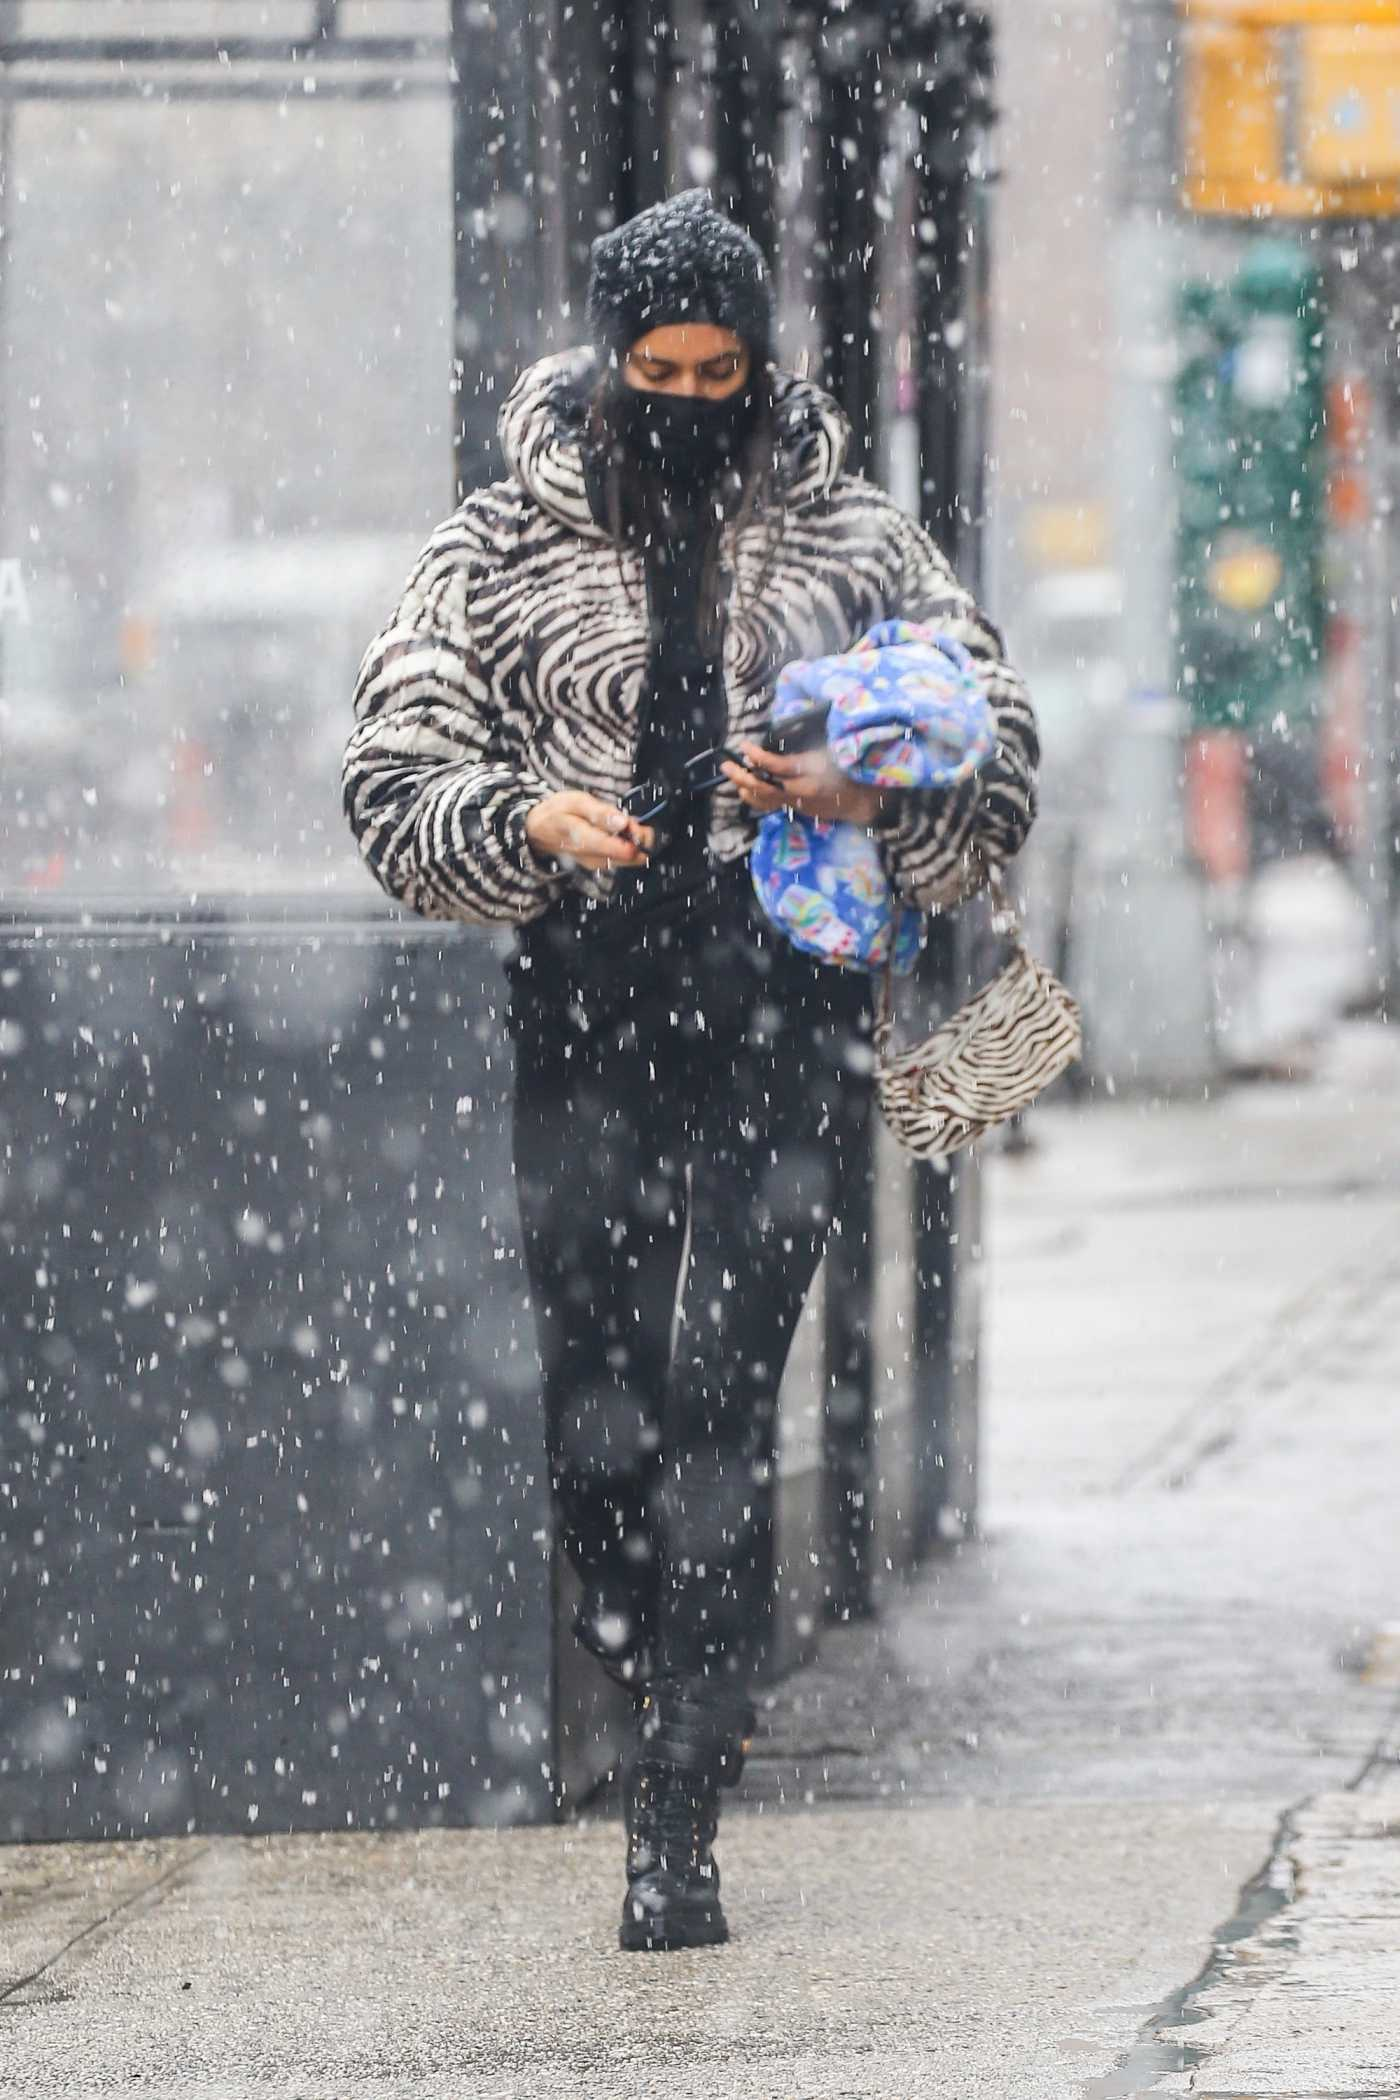 Irina Shayk in a Zebra Print Puffer Jacket Was Spotted During a Snowy Day in New York 02/22/2021